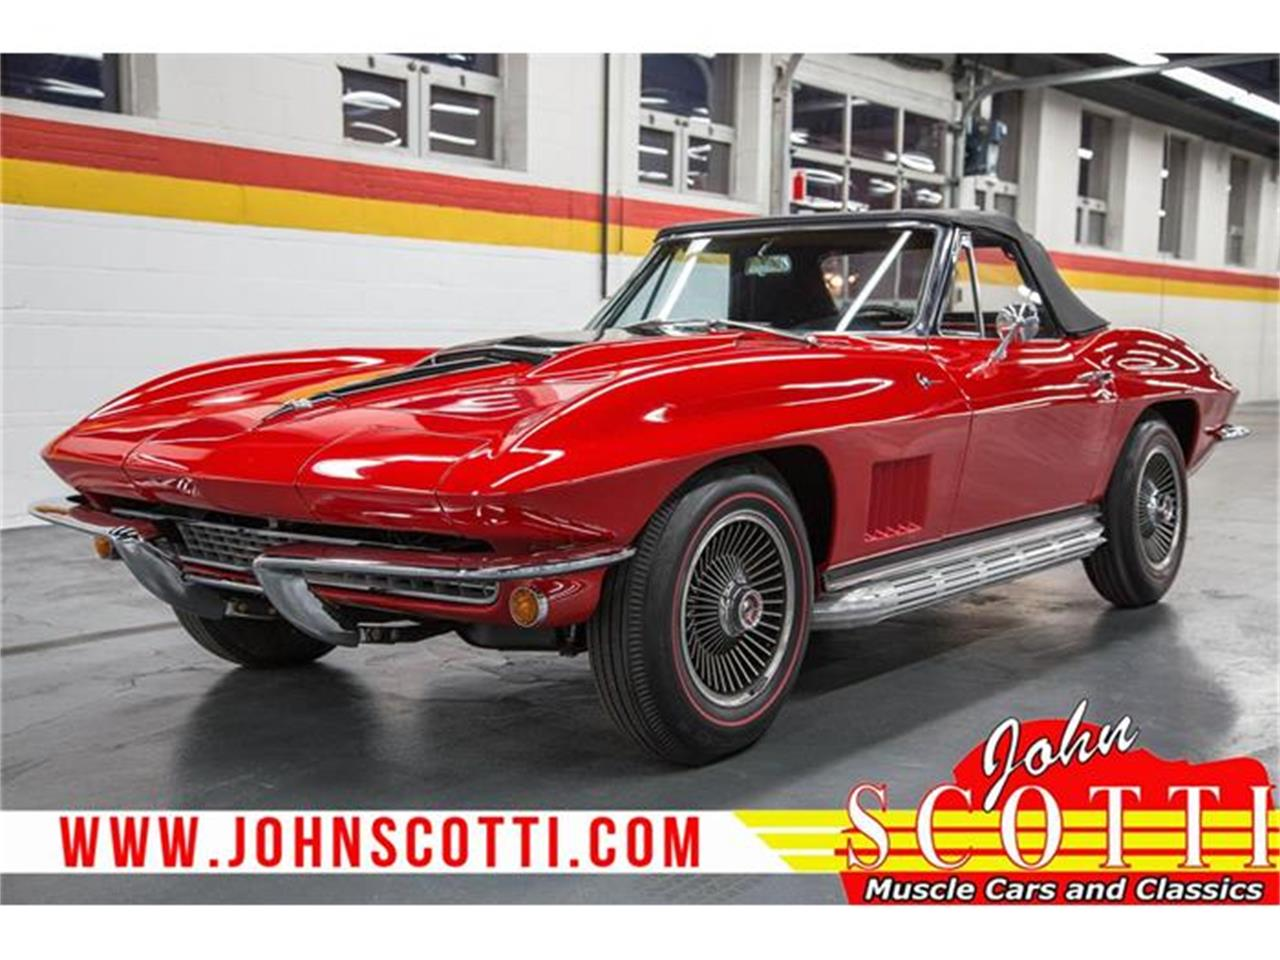 Large Picture of Classic '67 Chevrolet Corvette - $59,990.00 Offered by John Scotti Classic Cars - GA0F